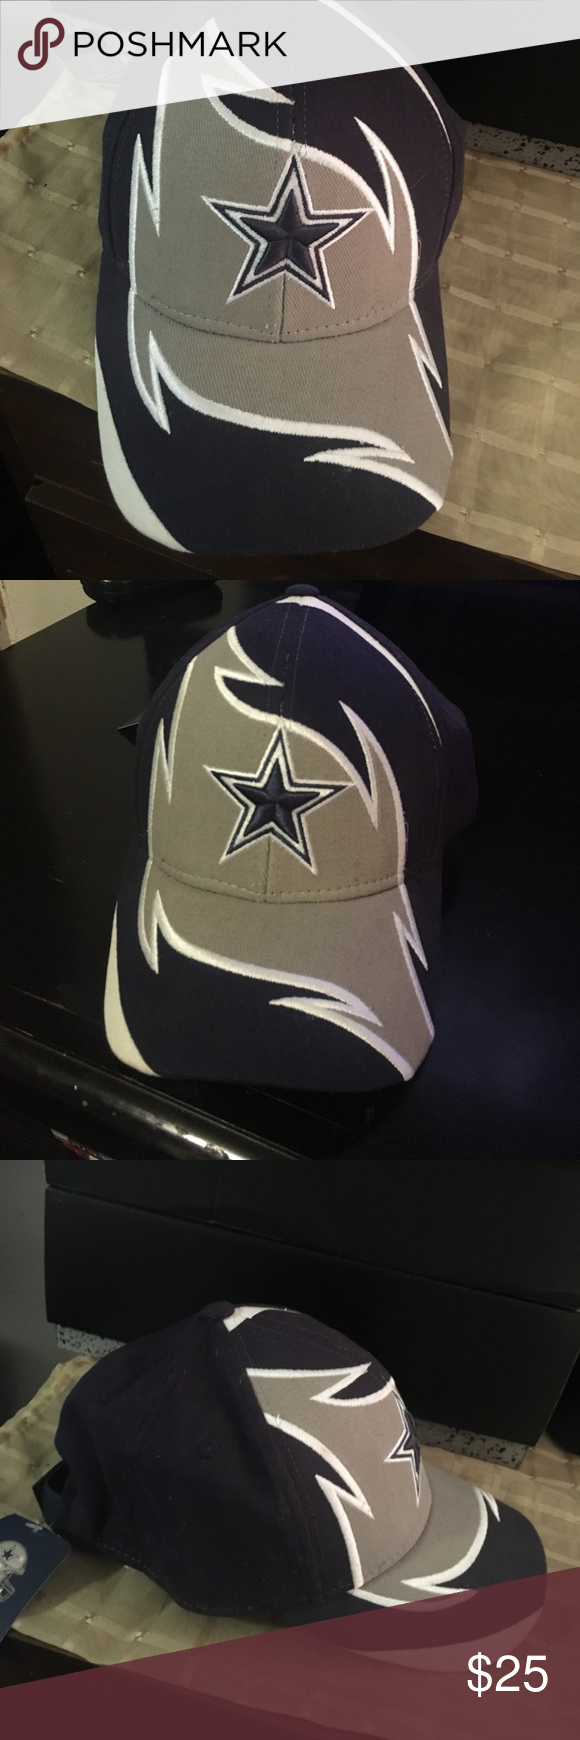 193e7123debe9 Dallas Cowboys Dad Cap   Hat  NEW  Official NFL Apparel Dallas Cowboys Dad  hat with strap back Brand New With Tags NFL Accessories Hats